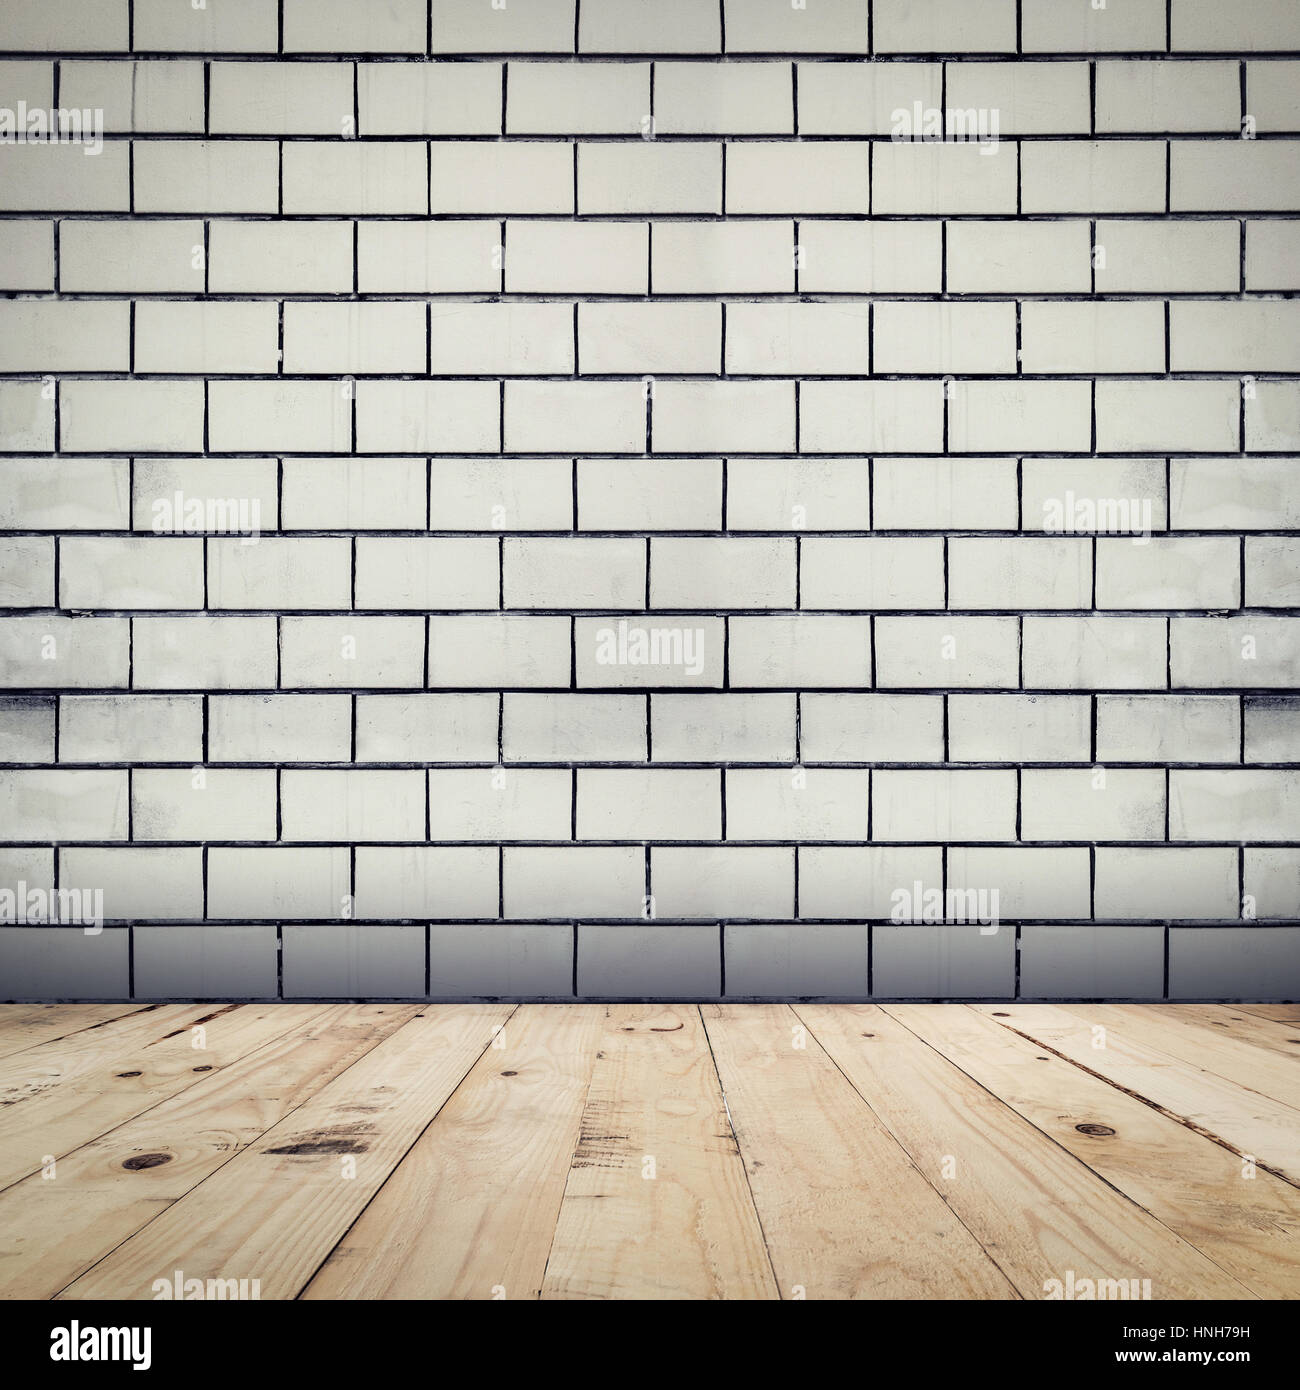 Grunge white brick wall background and wood floor perspective room interior